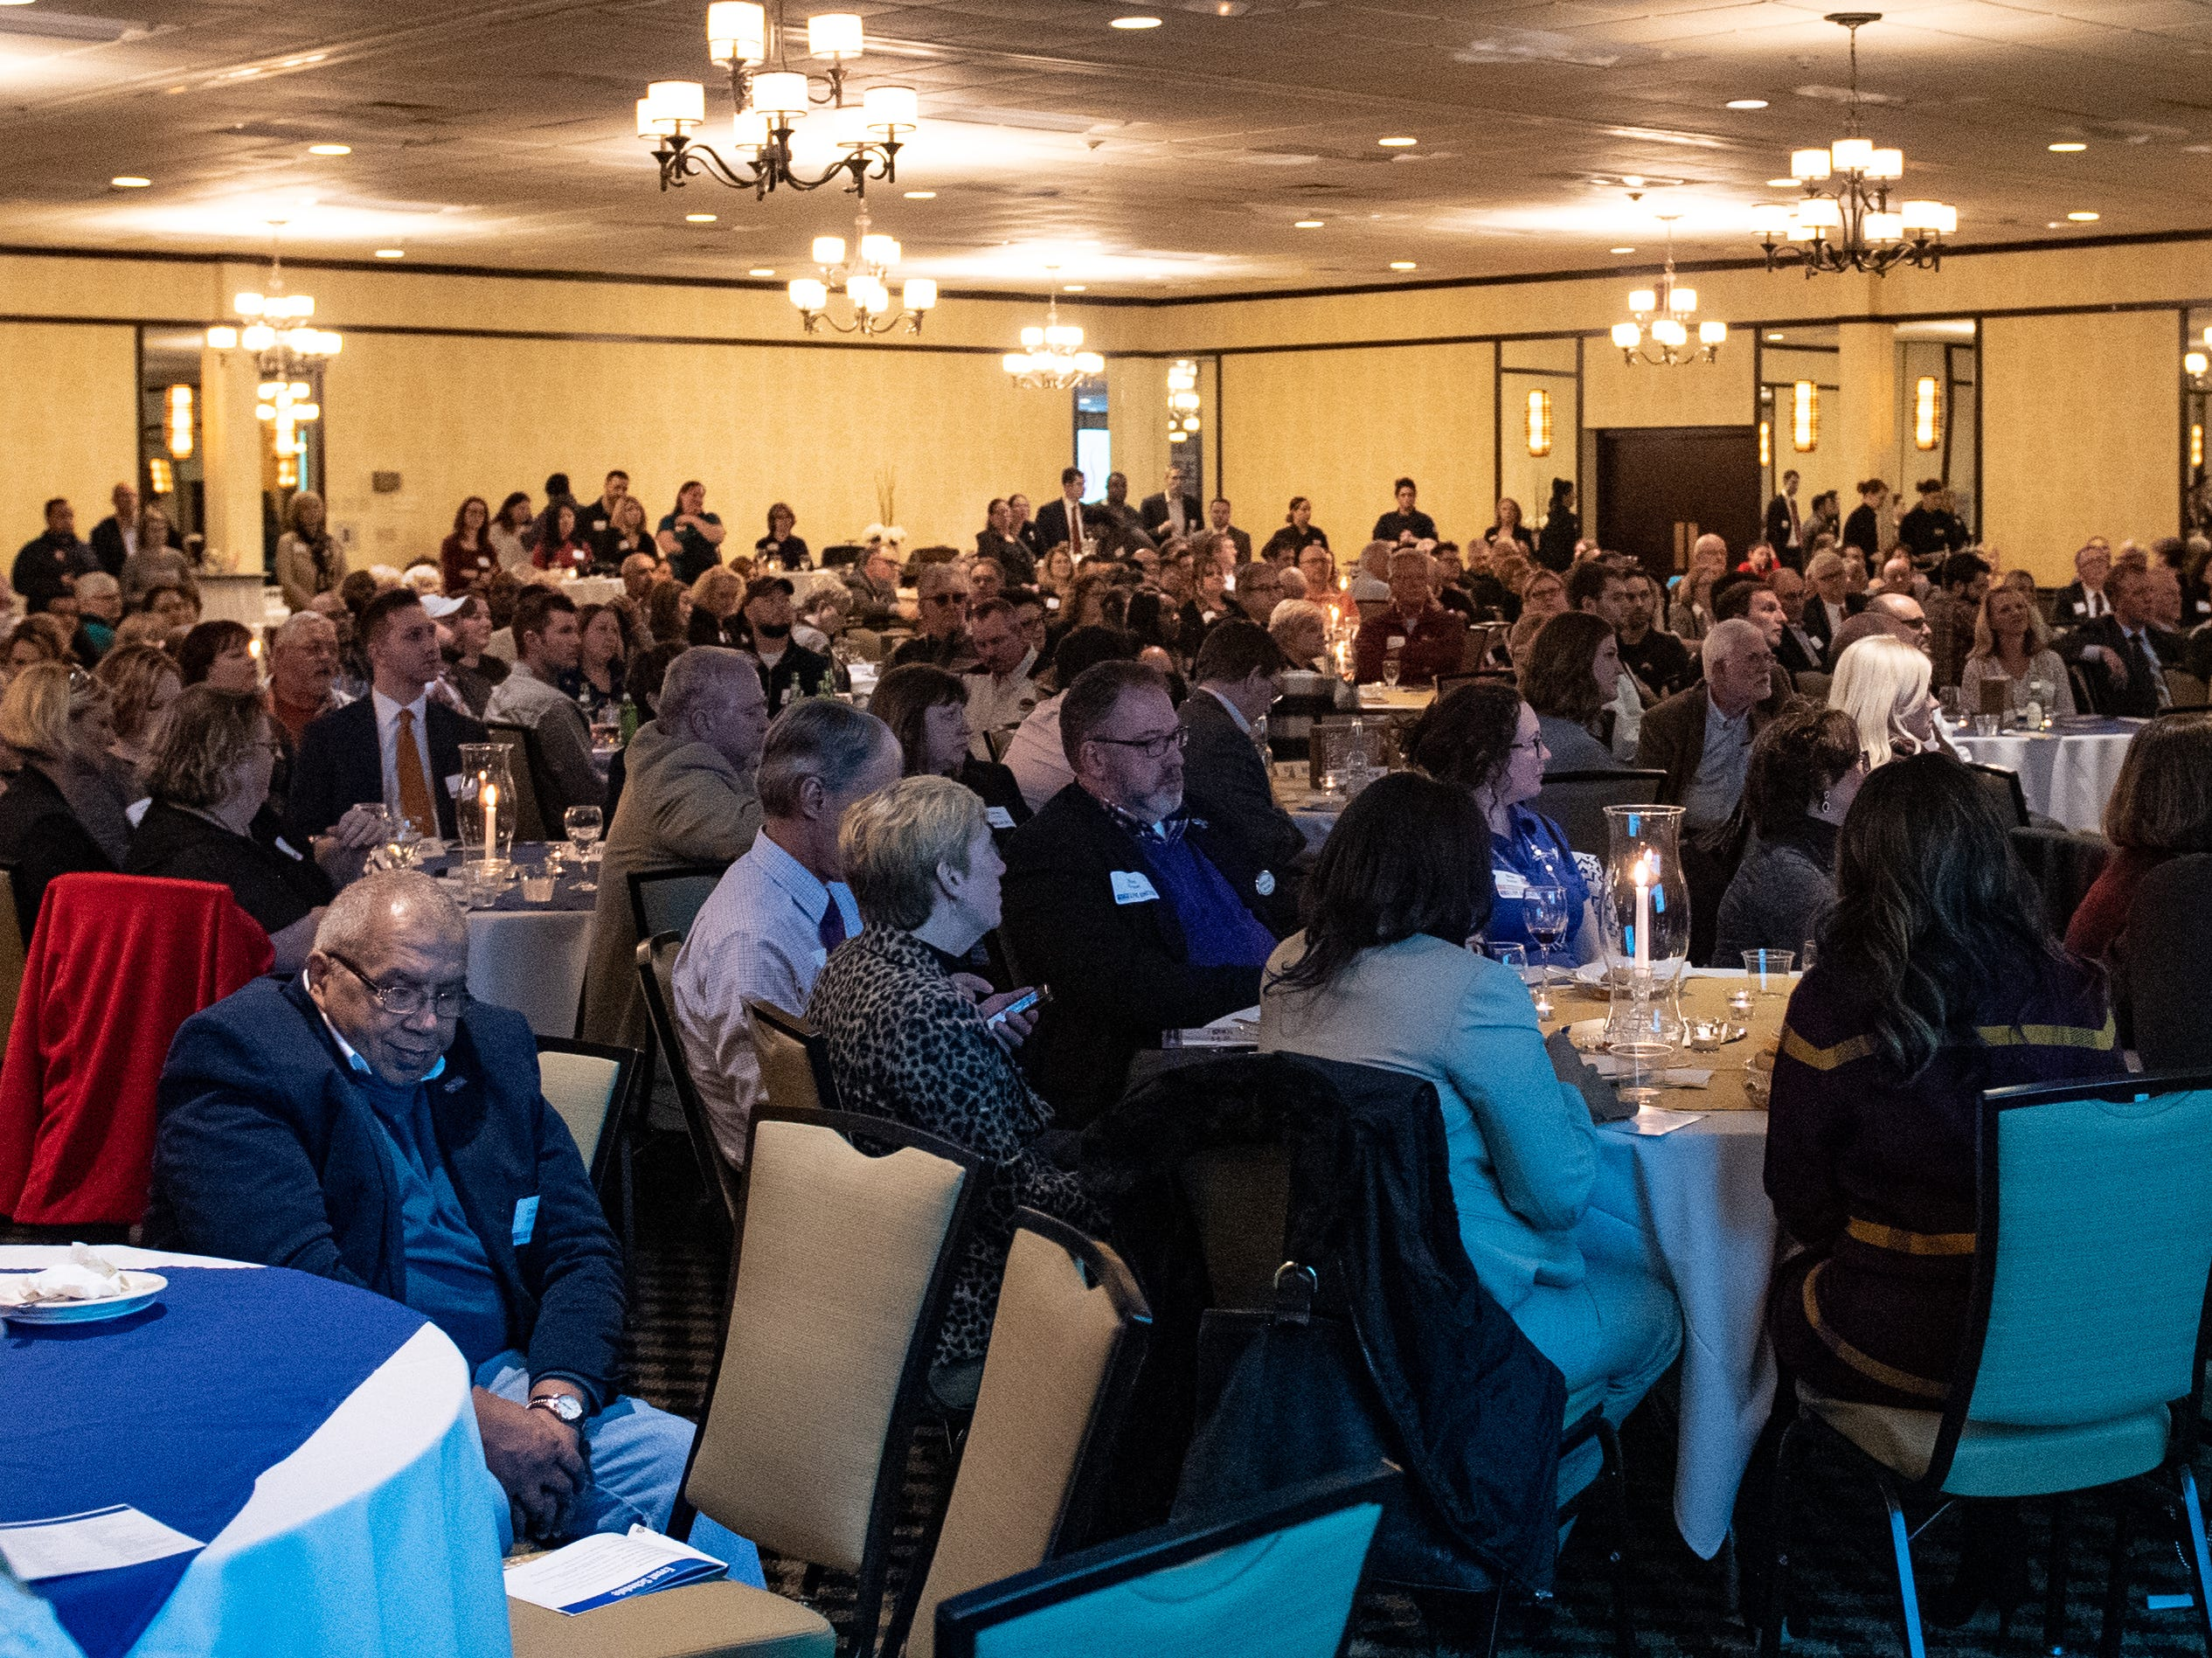 Every seat in the Wyndham Garden York Ballroom is filled during the 2018 United Way Campaign Celebration, February 7, 2019.